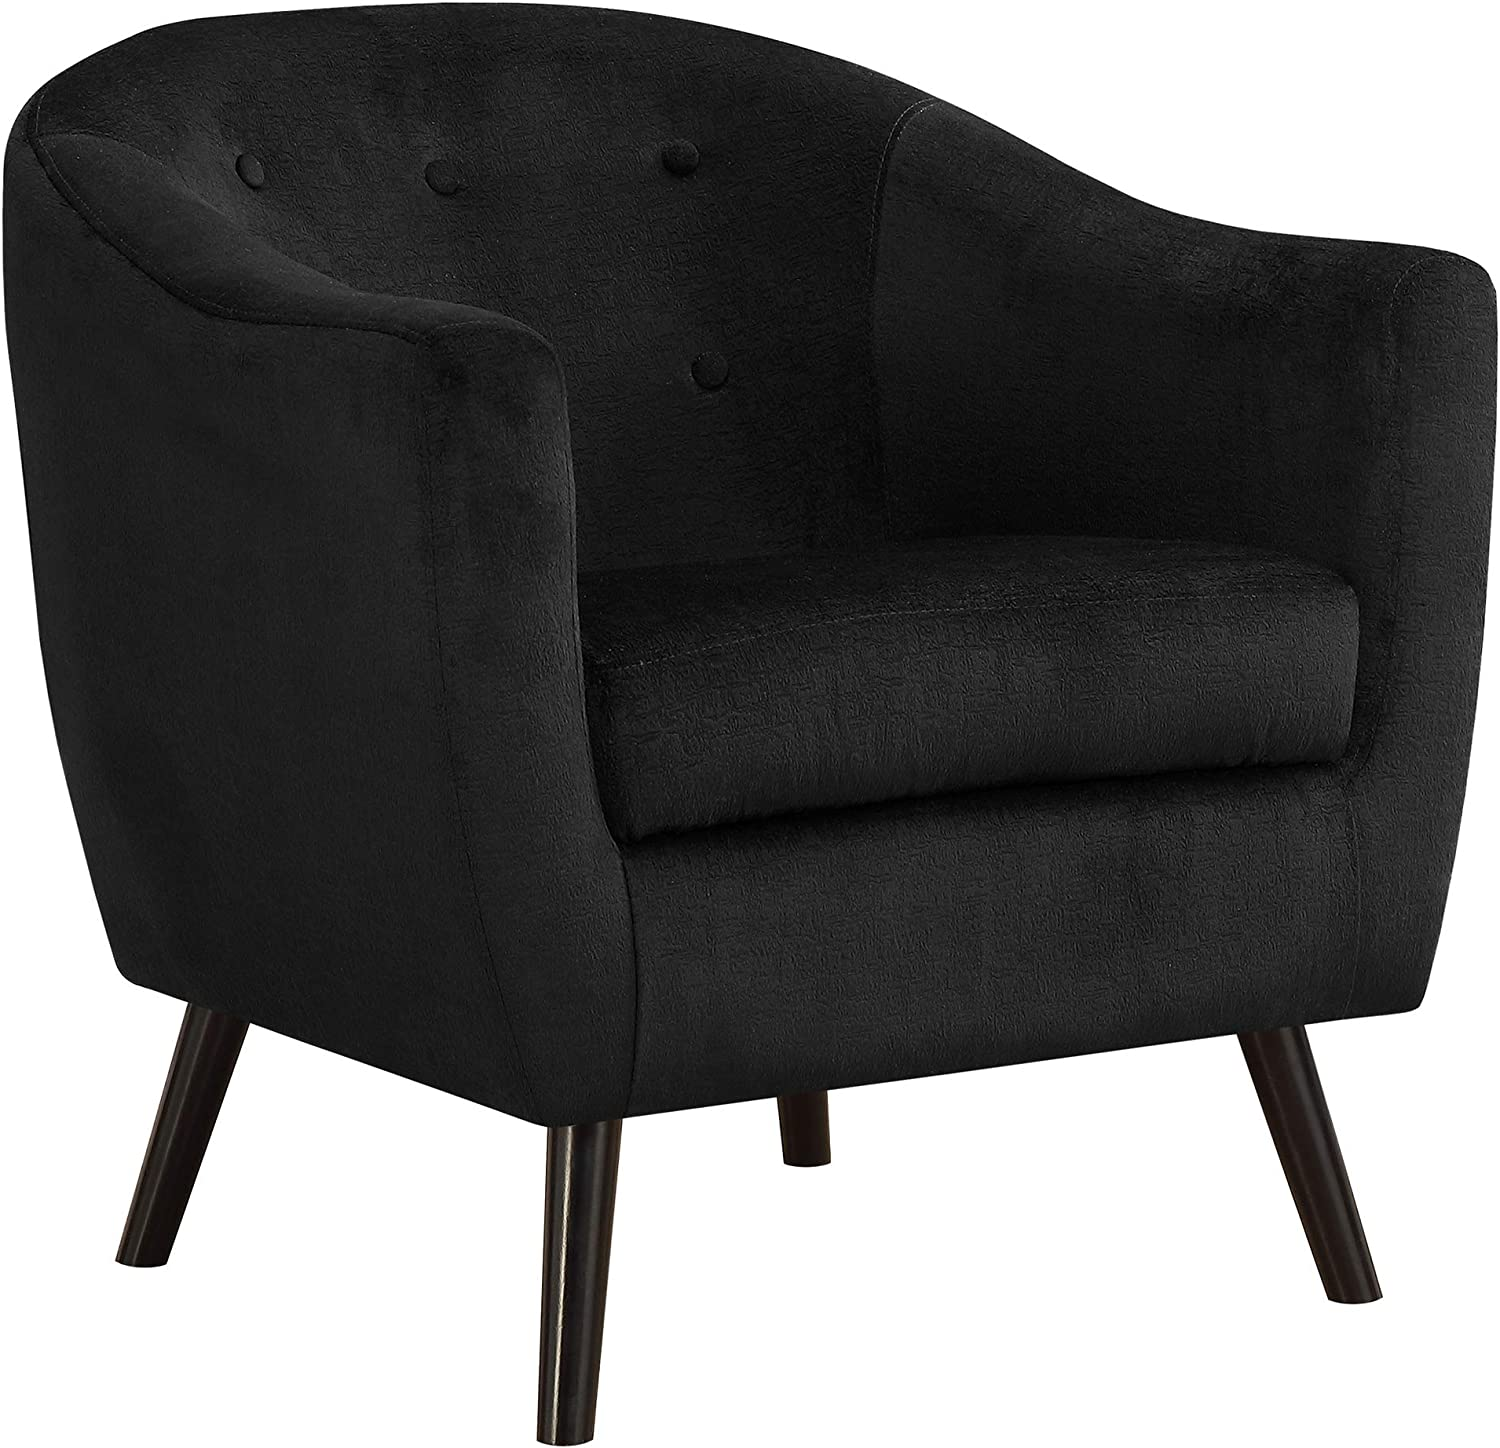 Monarch Specialties Accent Chair - Black Mosaic Velvet